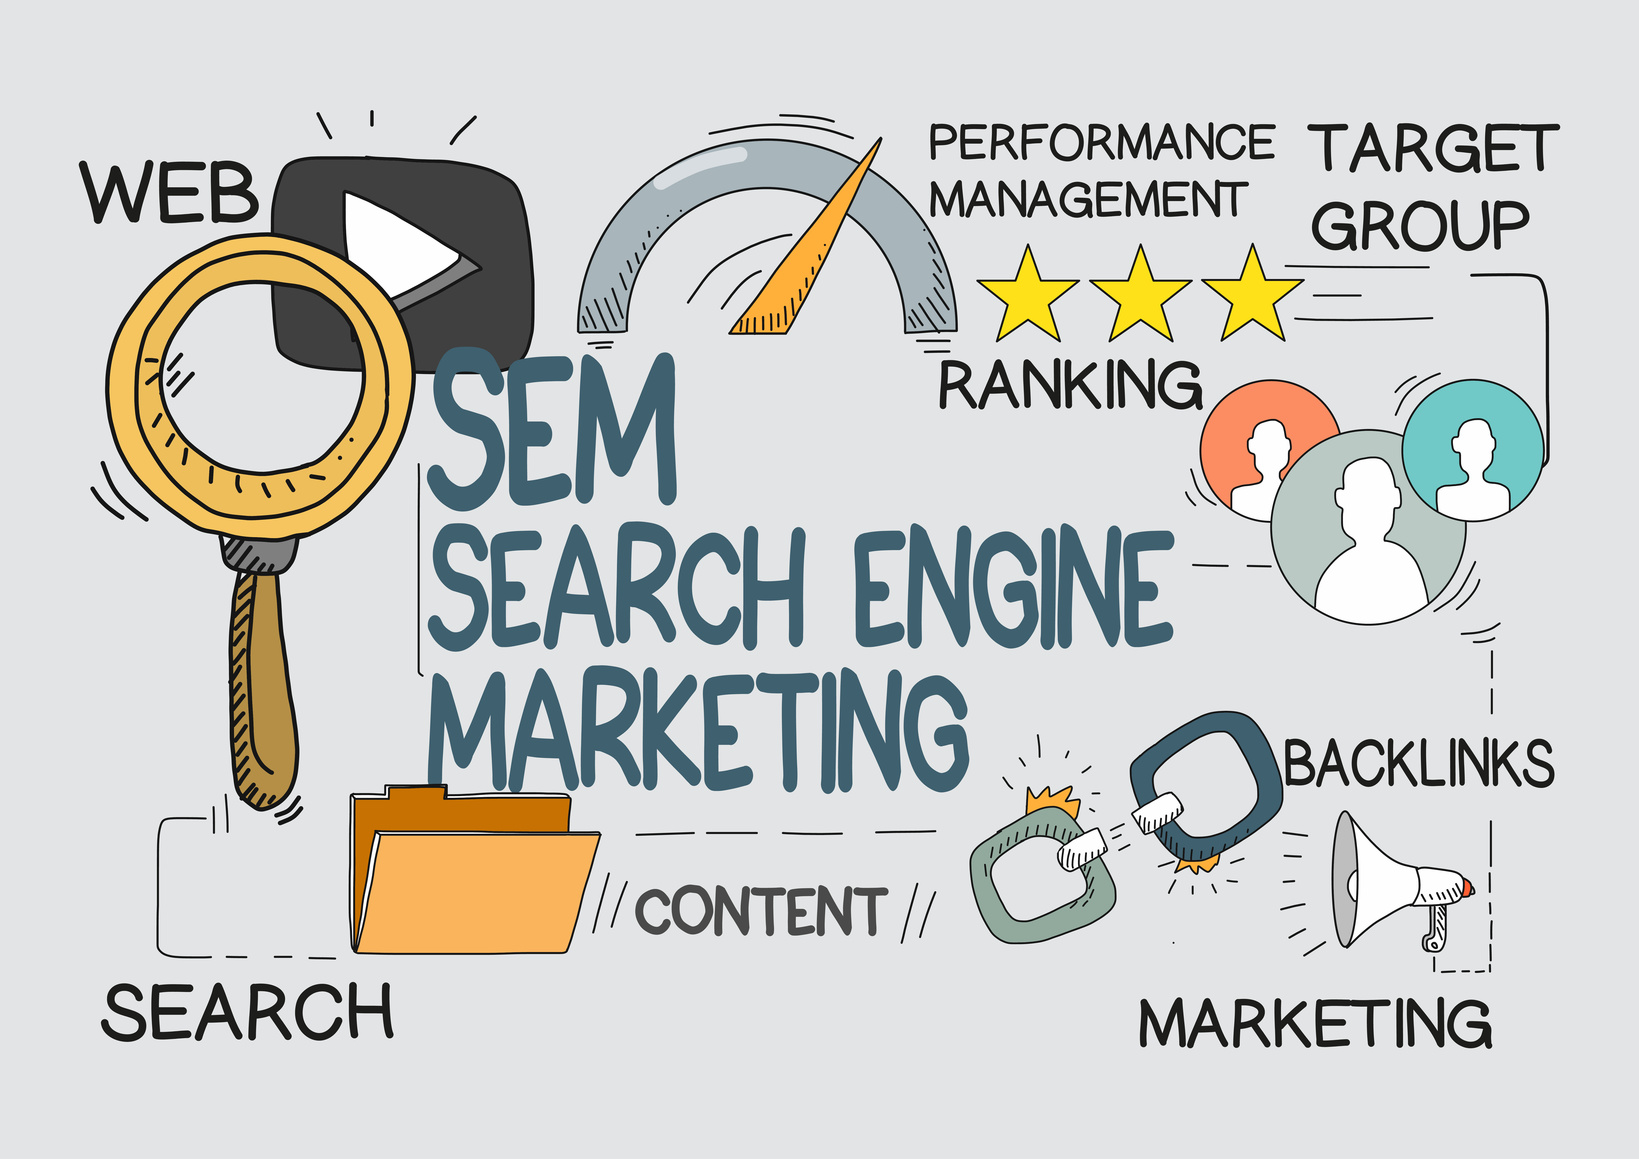 Study How Related Content material Can Enhance Search Engine Rating In New York?